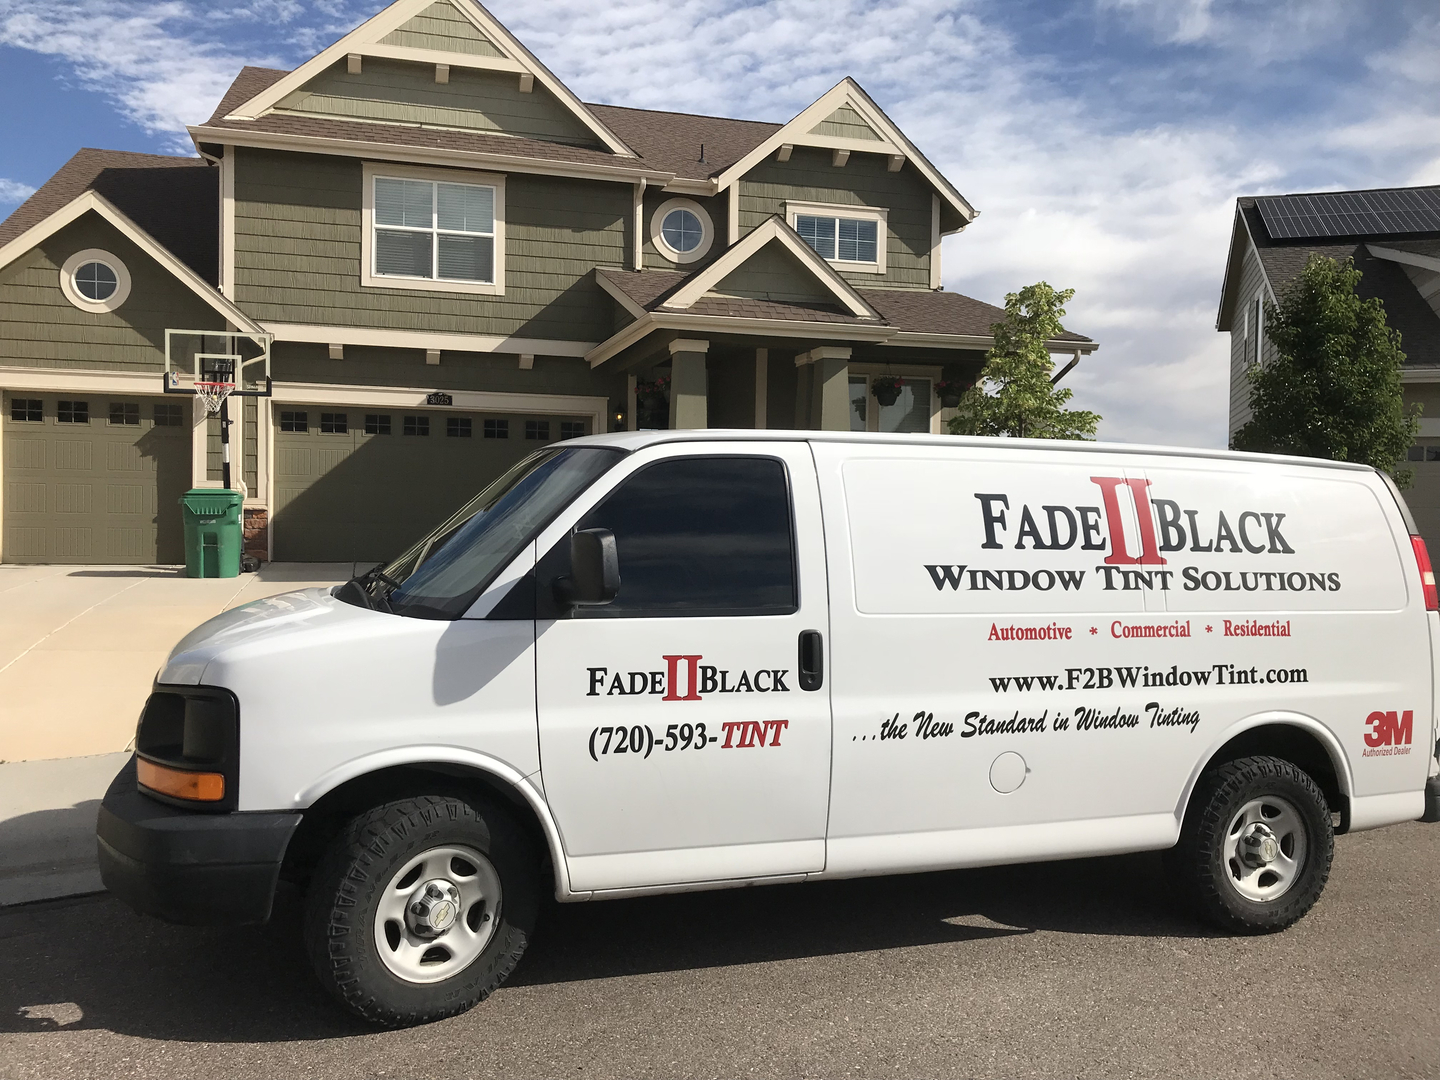 Residential Window Tint Services at Fade II Black